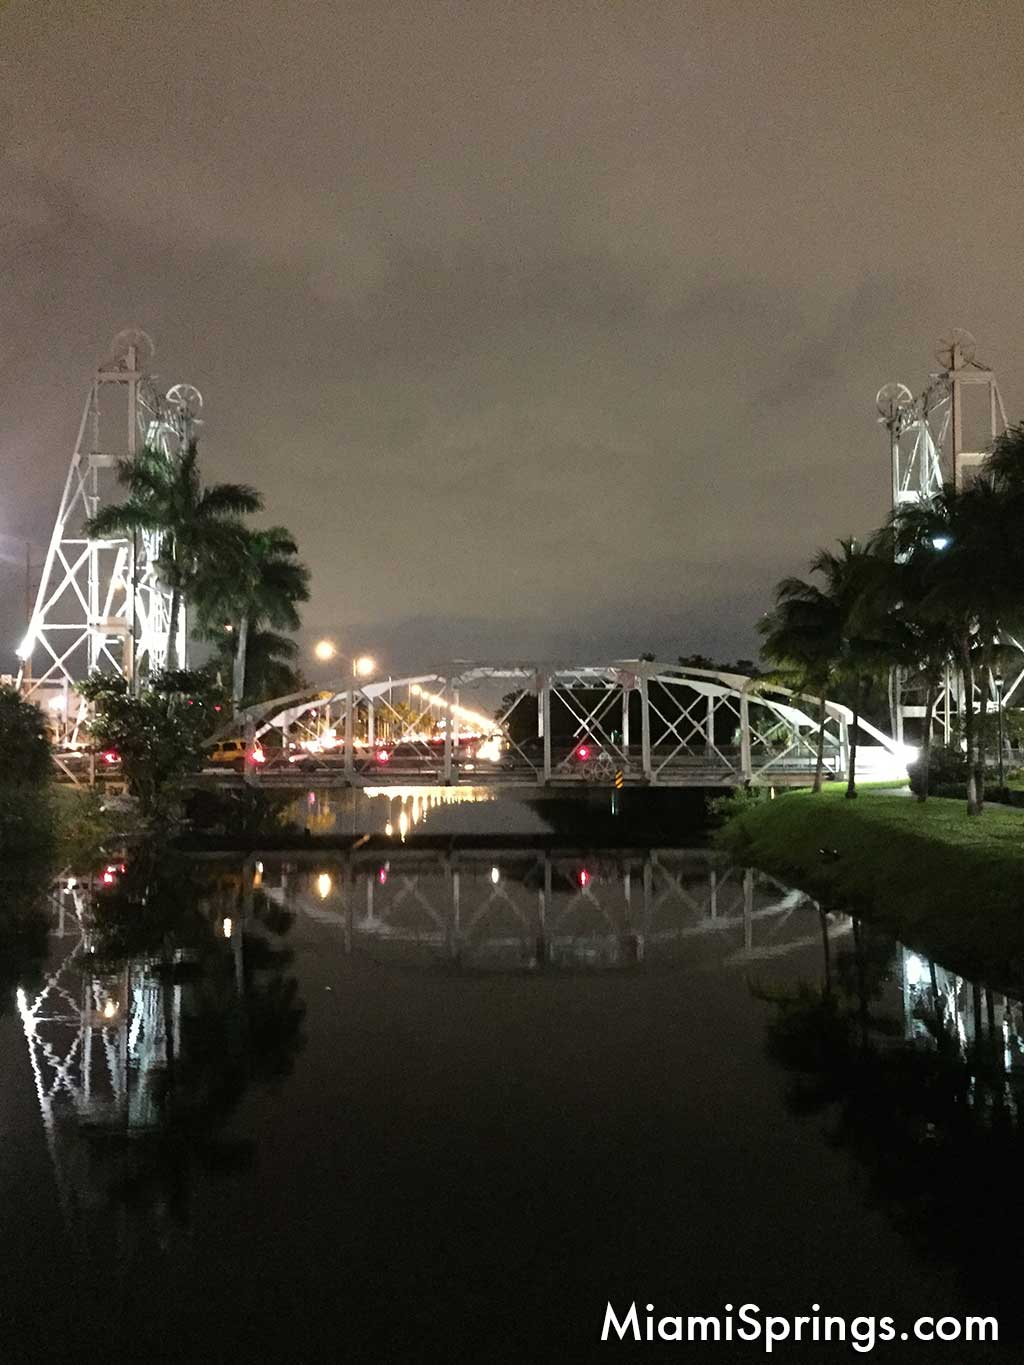 Night view of Miami Springs bridges